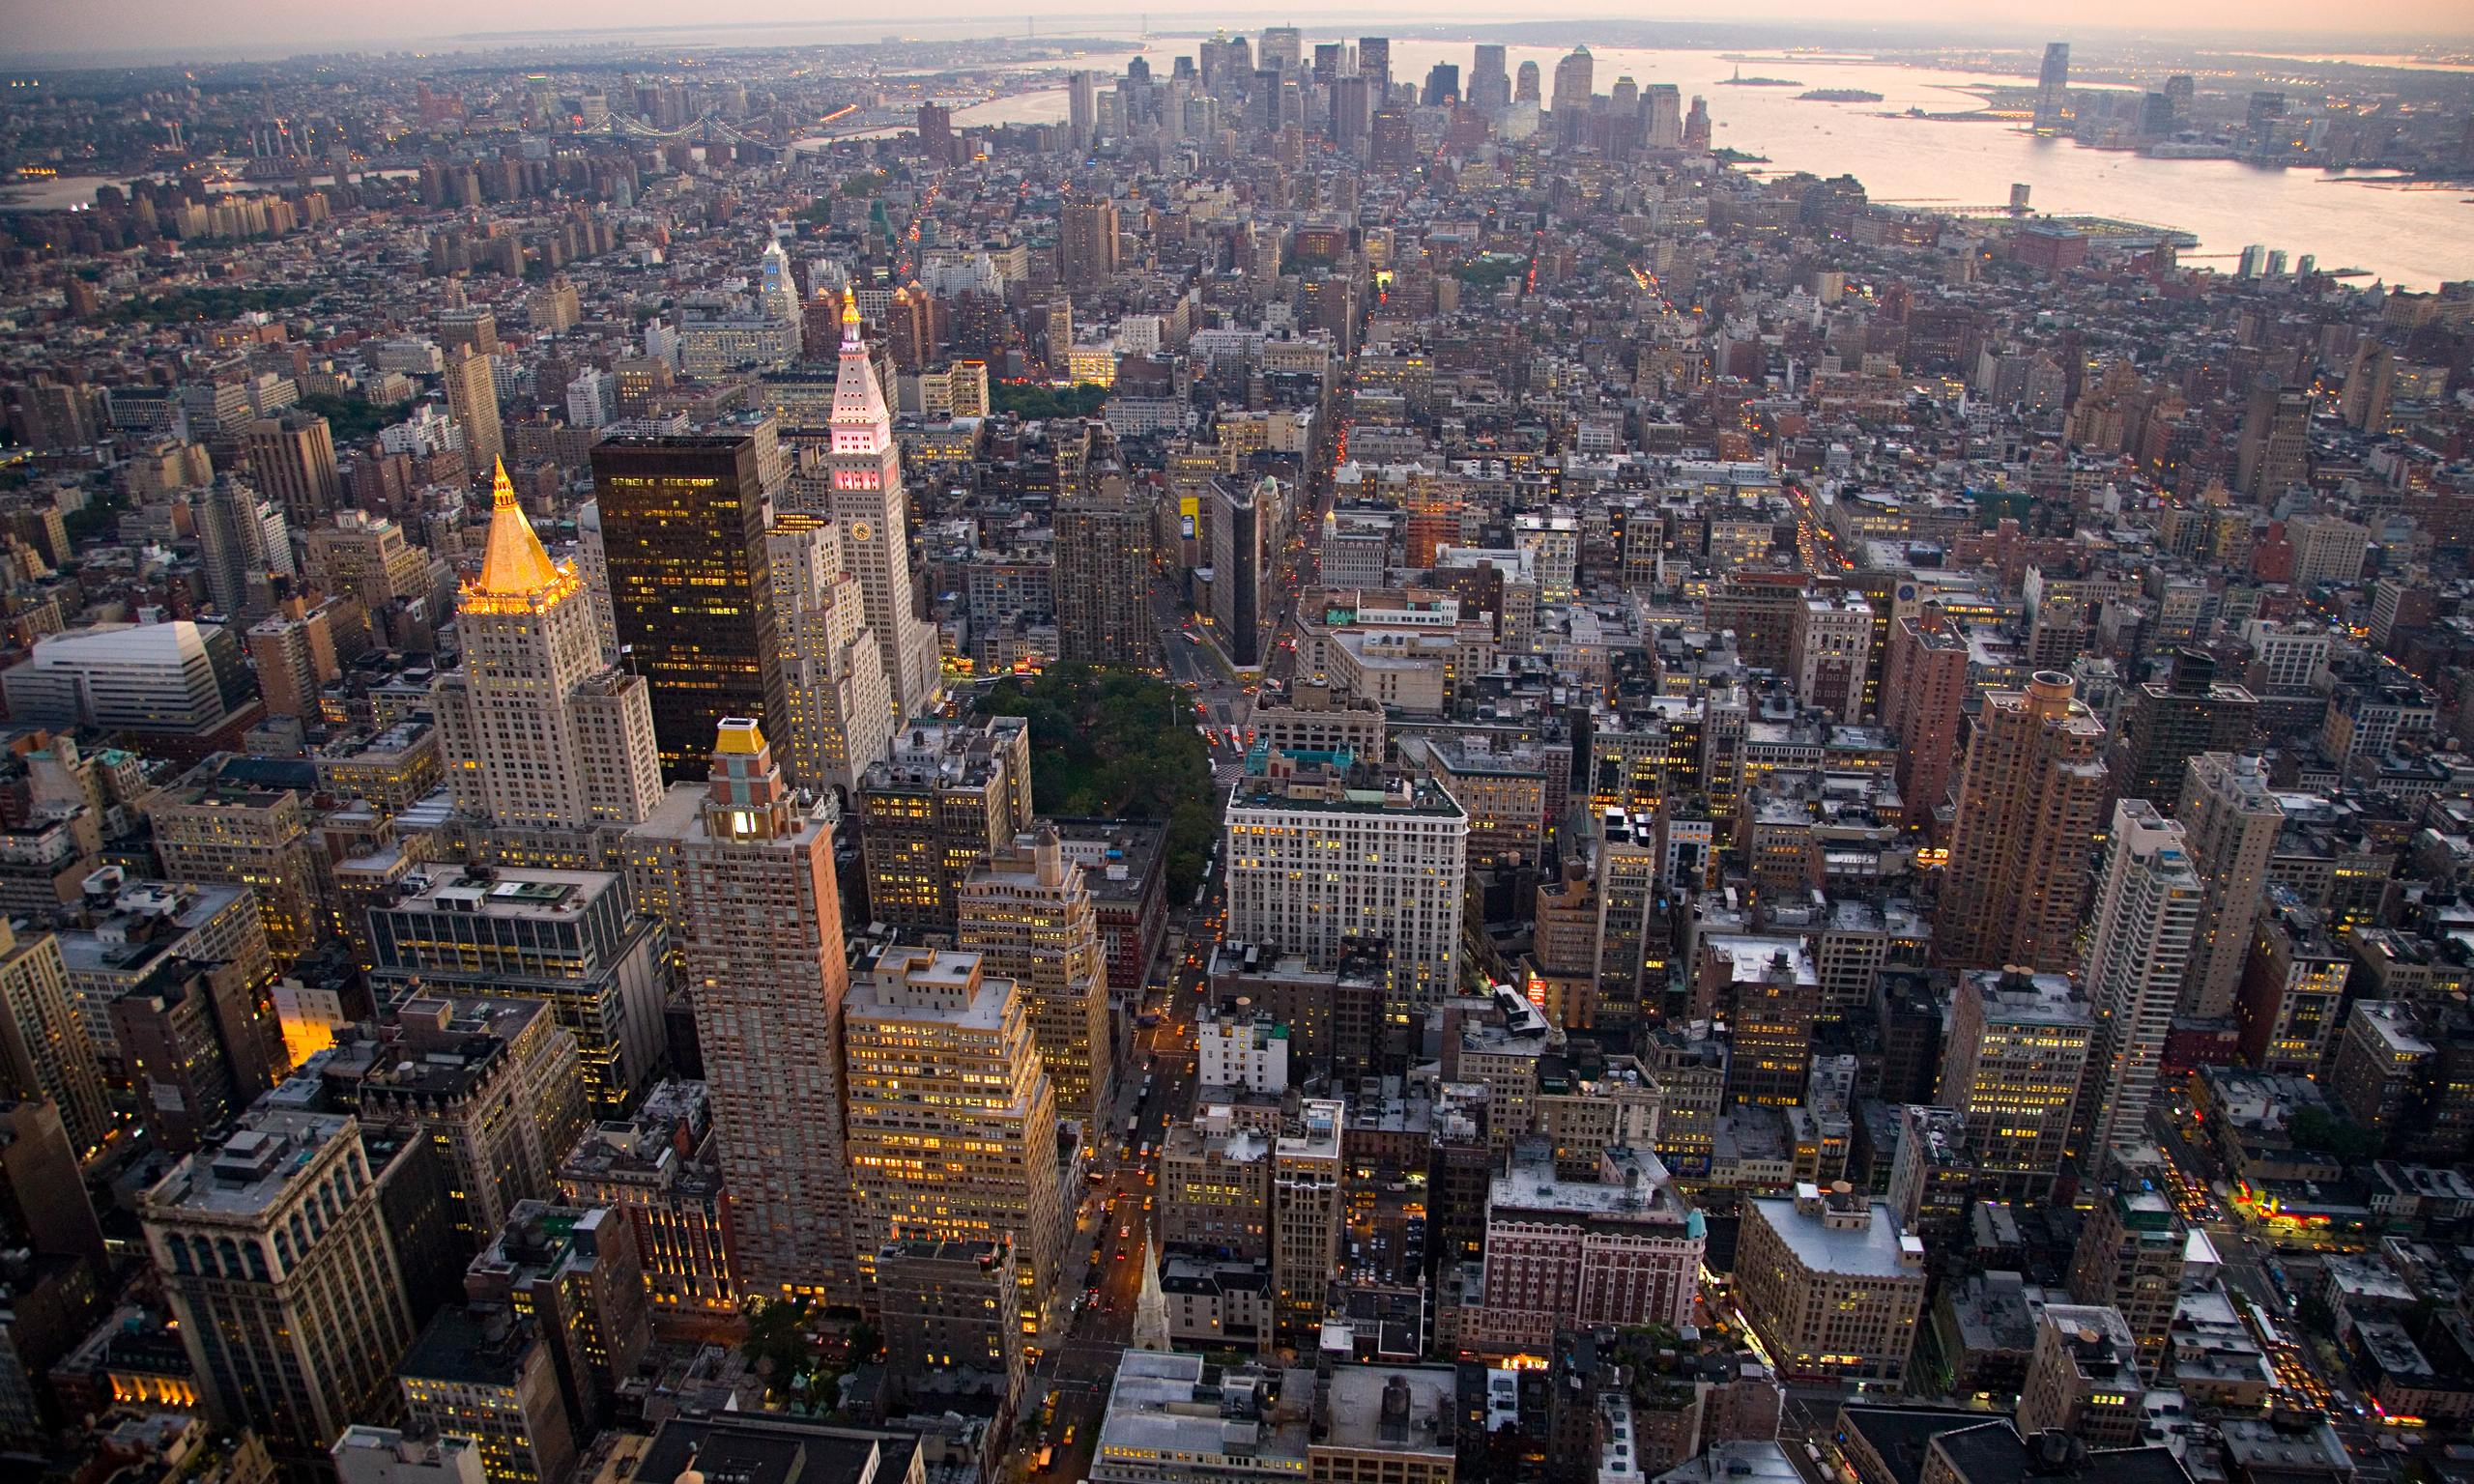 informative essay on new york city Welcome to the most ambitious exhibition ever assembled on the subject of slavery in new york on october 7, slavery in new york, a multimedia exhibition, reveals a history of which most people are unaware, illuminates the contributions of the enslaved and explores the role slavery played in the making of new york and the united states.